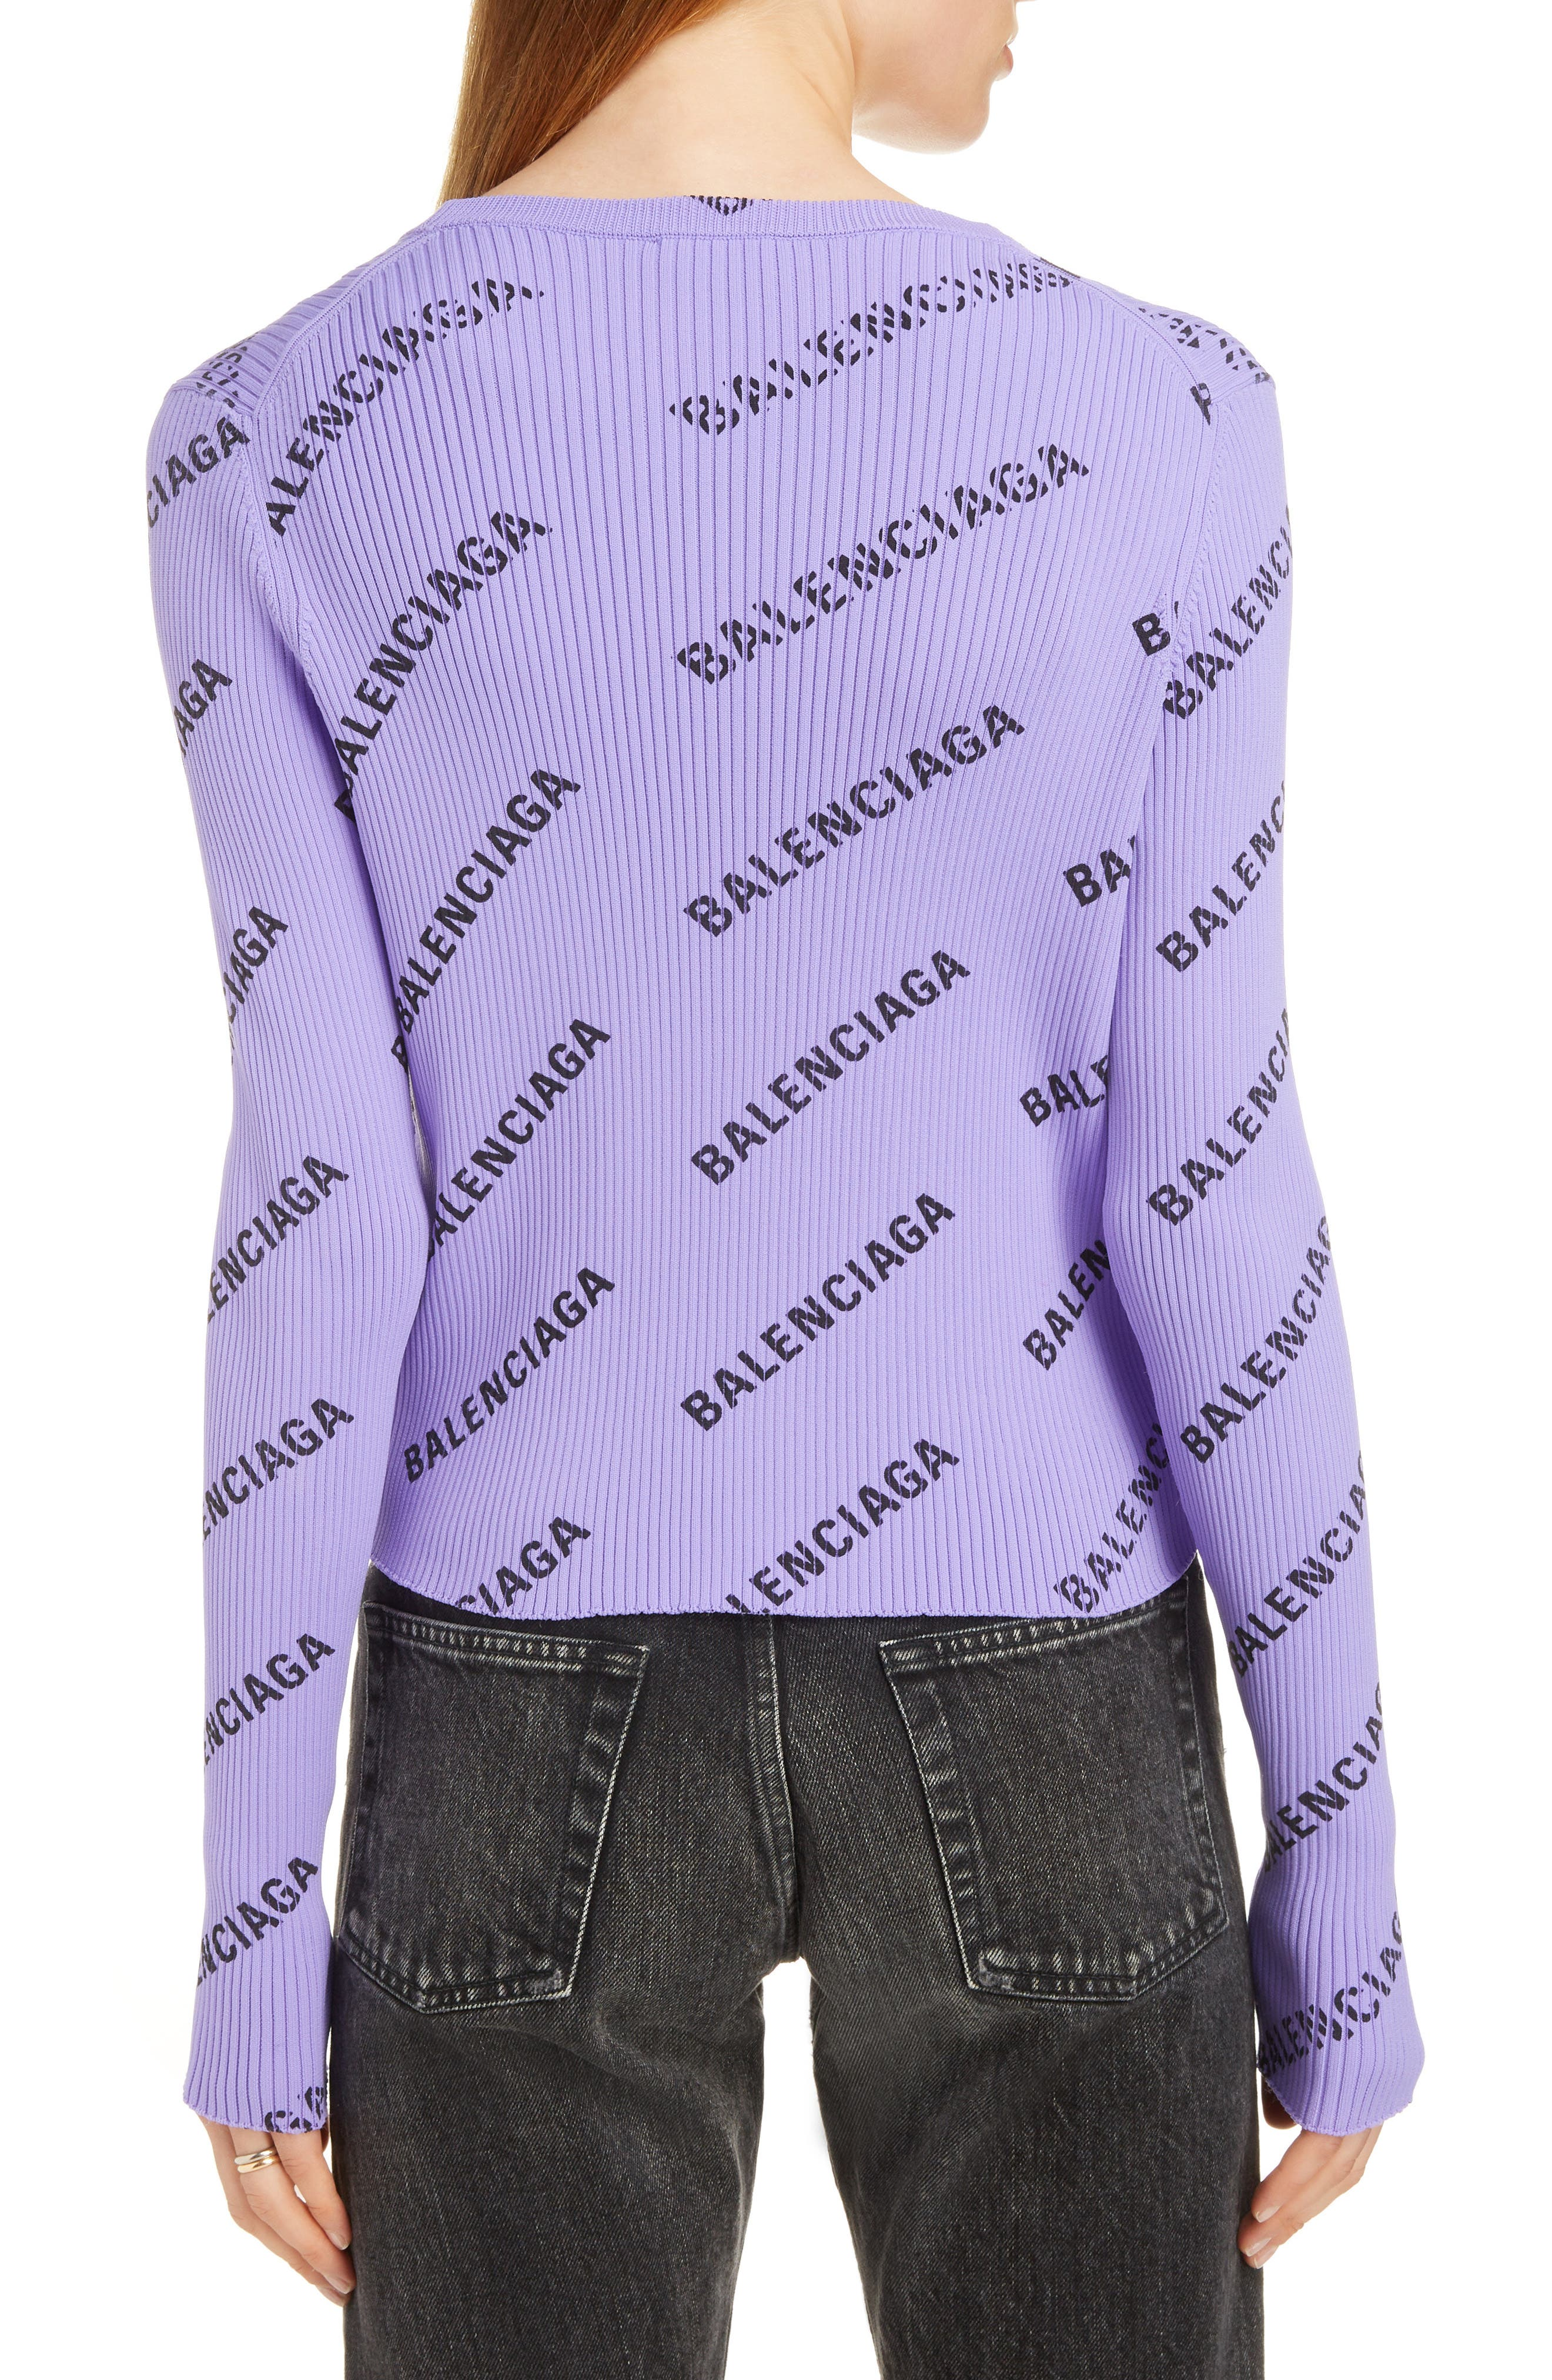 Logo Print Rib Knit Cardigan,                             Alternate thumbnail 2, color,                             LILAC/ BLACK